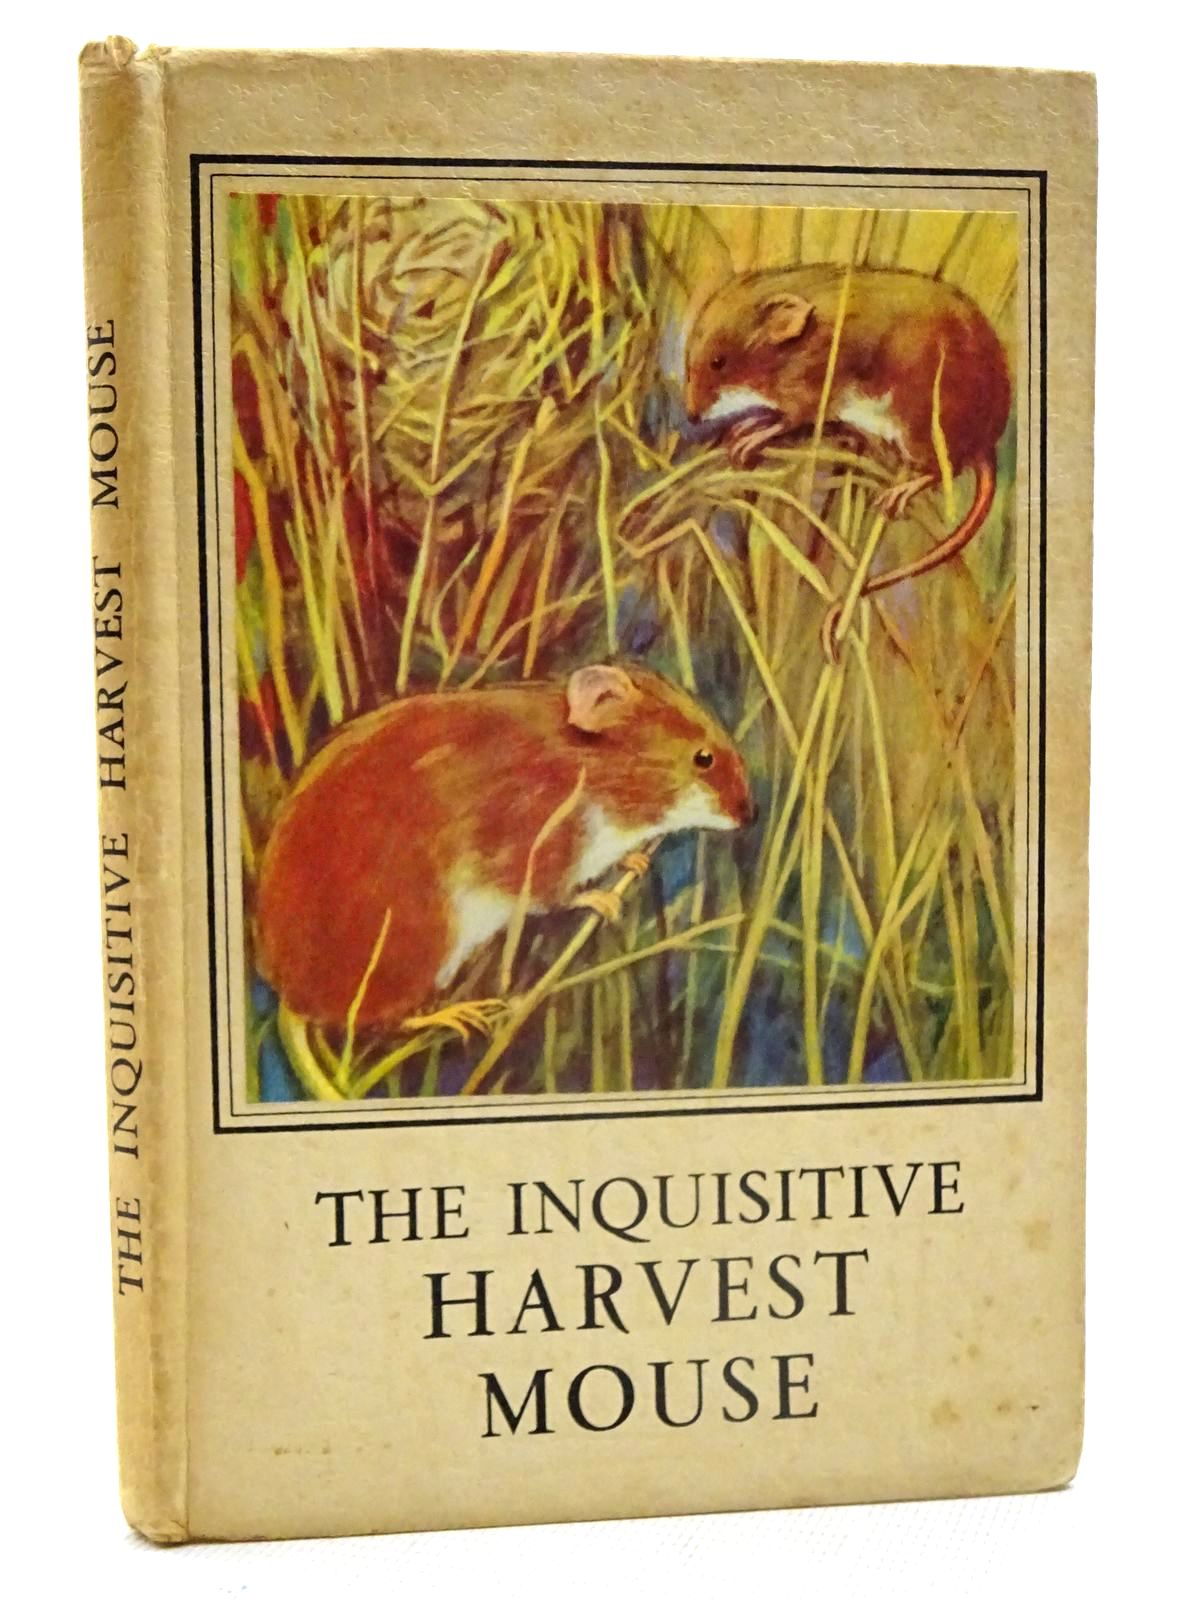 Photo of THE INQUISITIVE HARVEST MOUSE written by Barr, Noel illustrated by Hickling, P.B. published by Wills & Hepworth Ltd. (STOCK CODE: 1317397)  for sale by Stella & Rose's Books